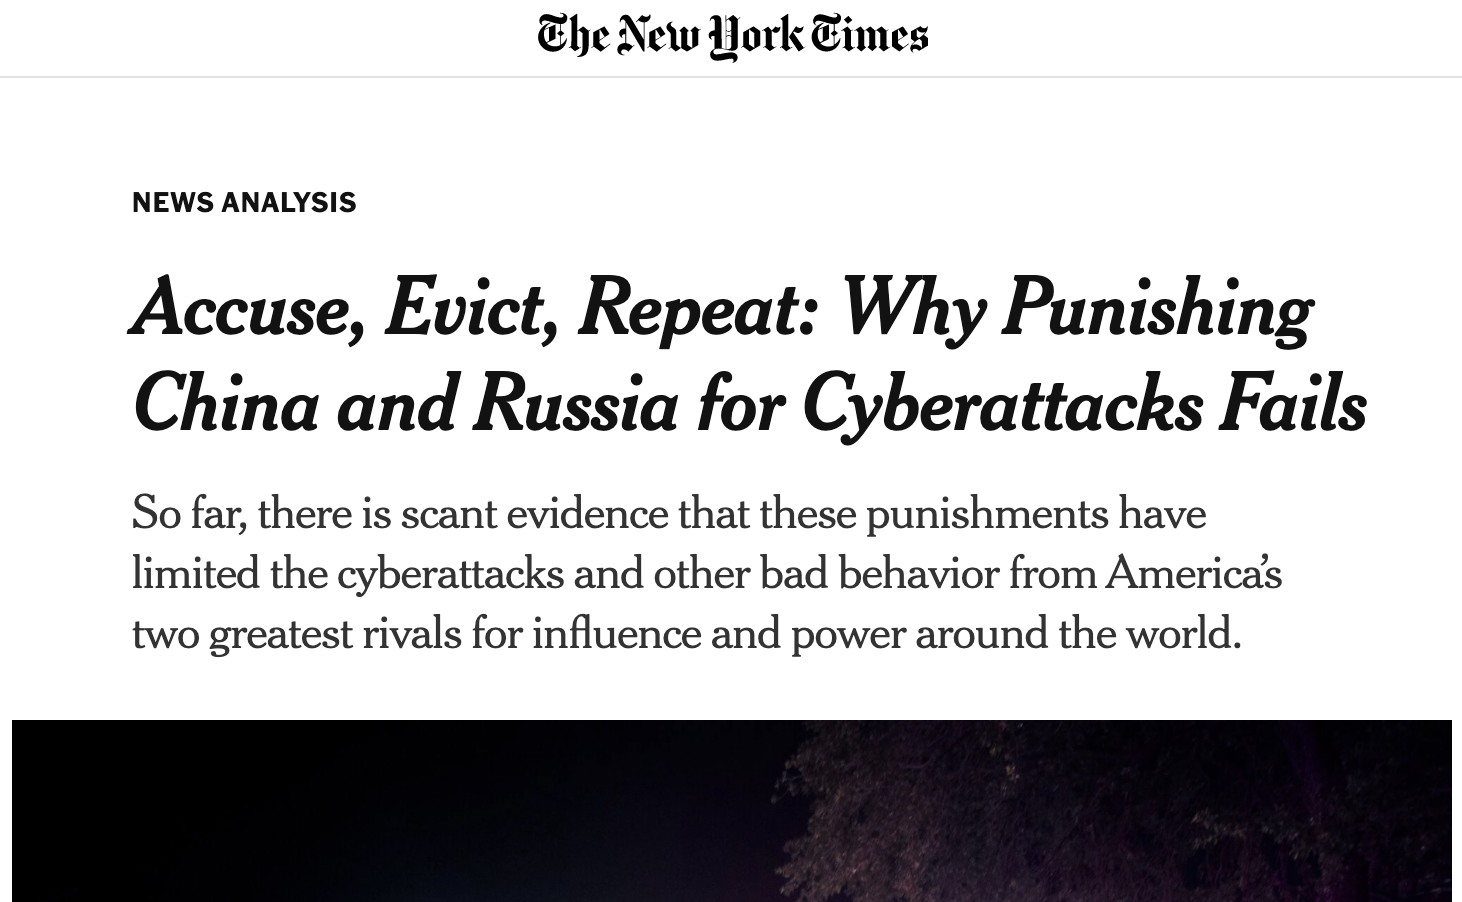 Greg Rattray featured in the New York Times: Accuse, Evict, Repeat: Why Punishing China and Russia for Cyberattacks Fails